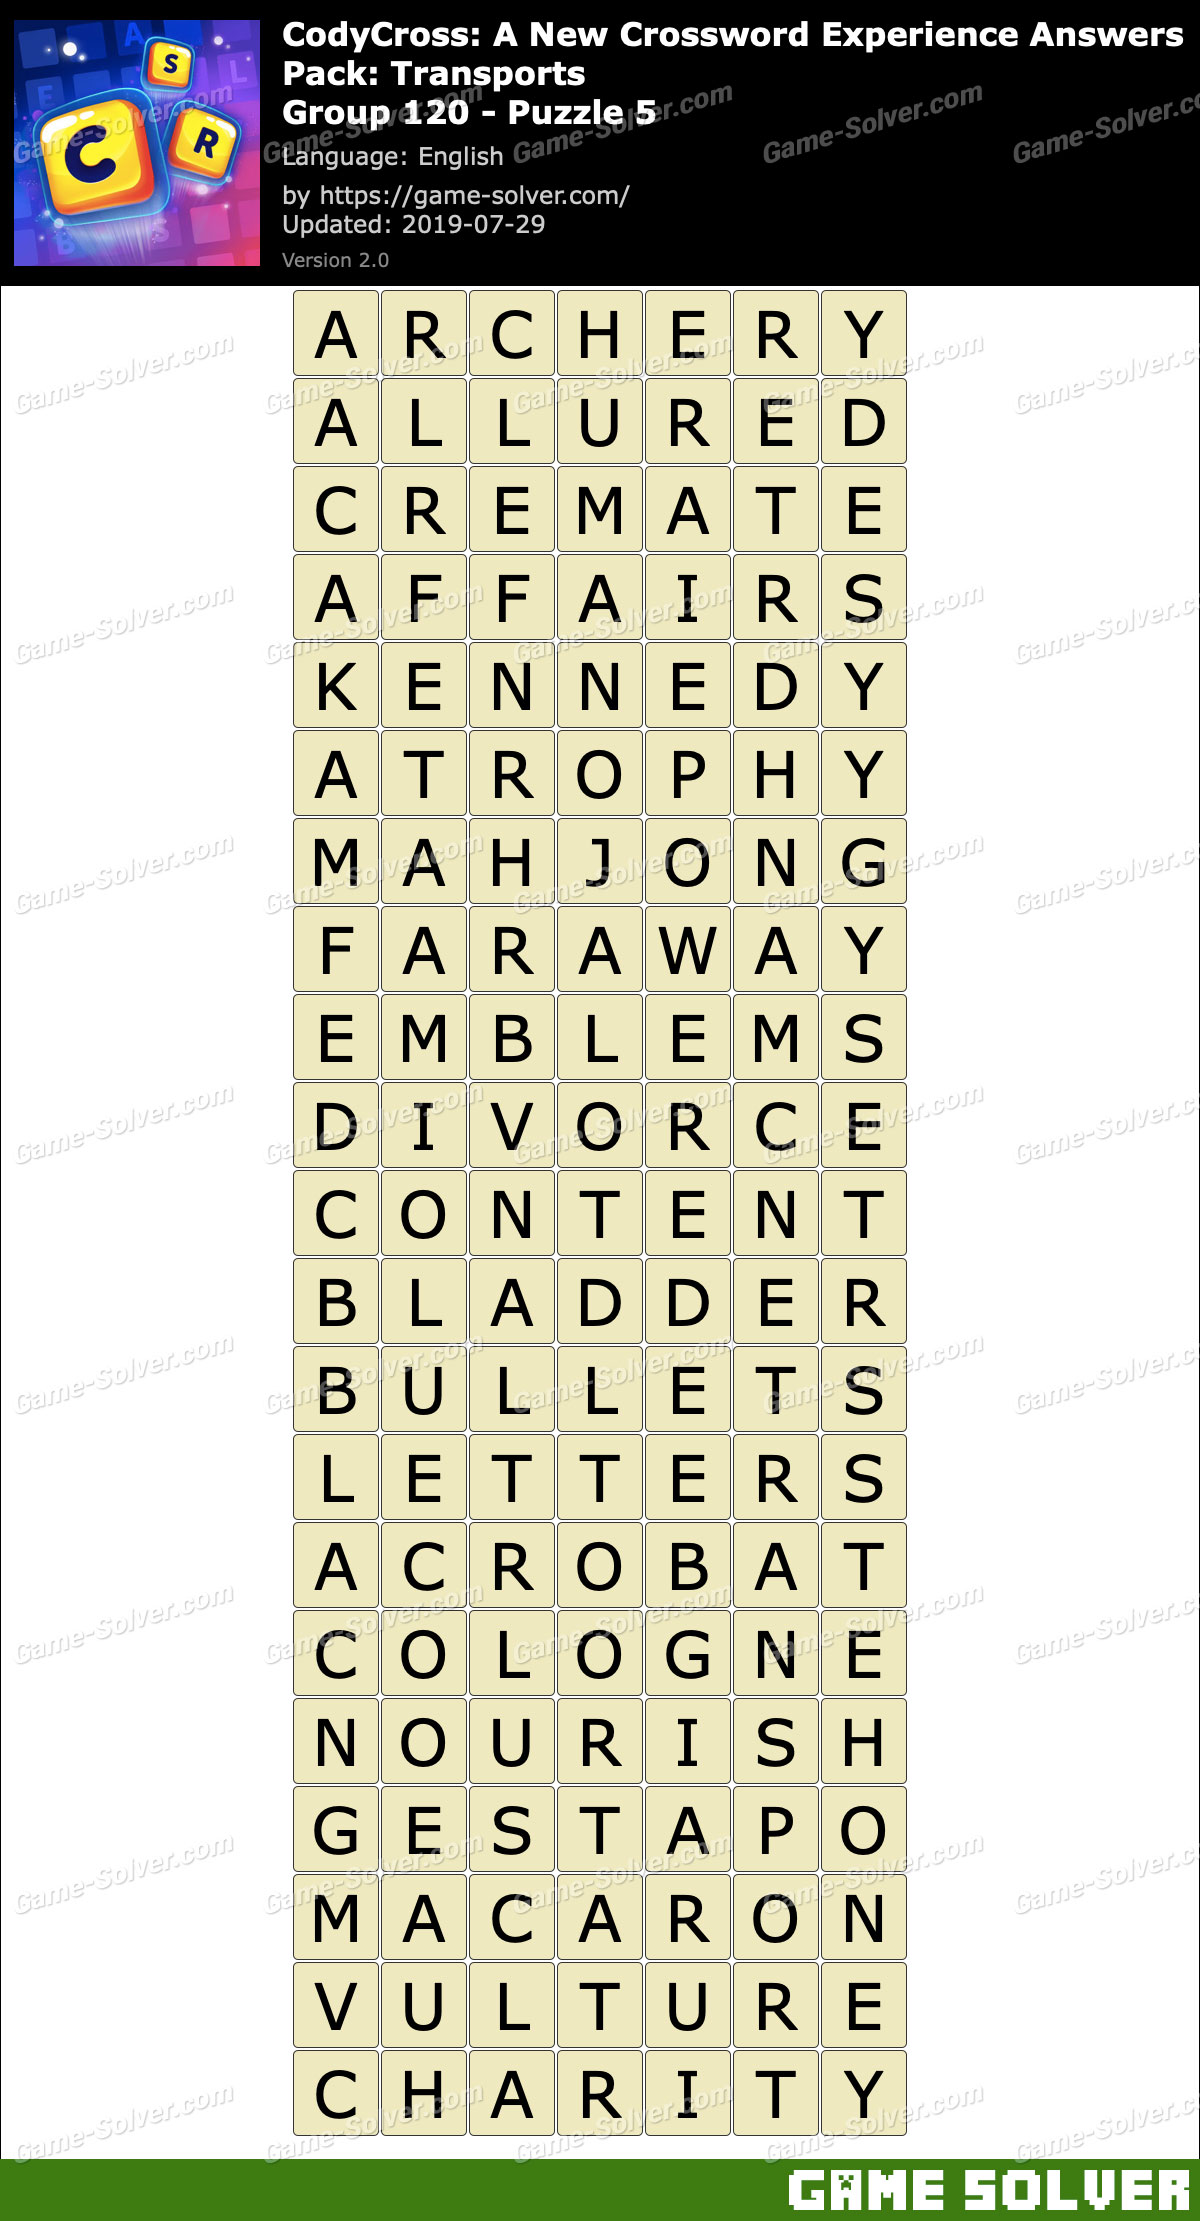 CodyCross Transports Group 120-Puzzle 5 Answers